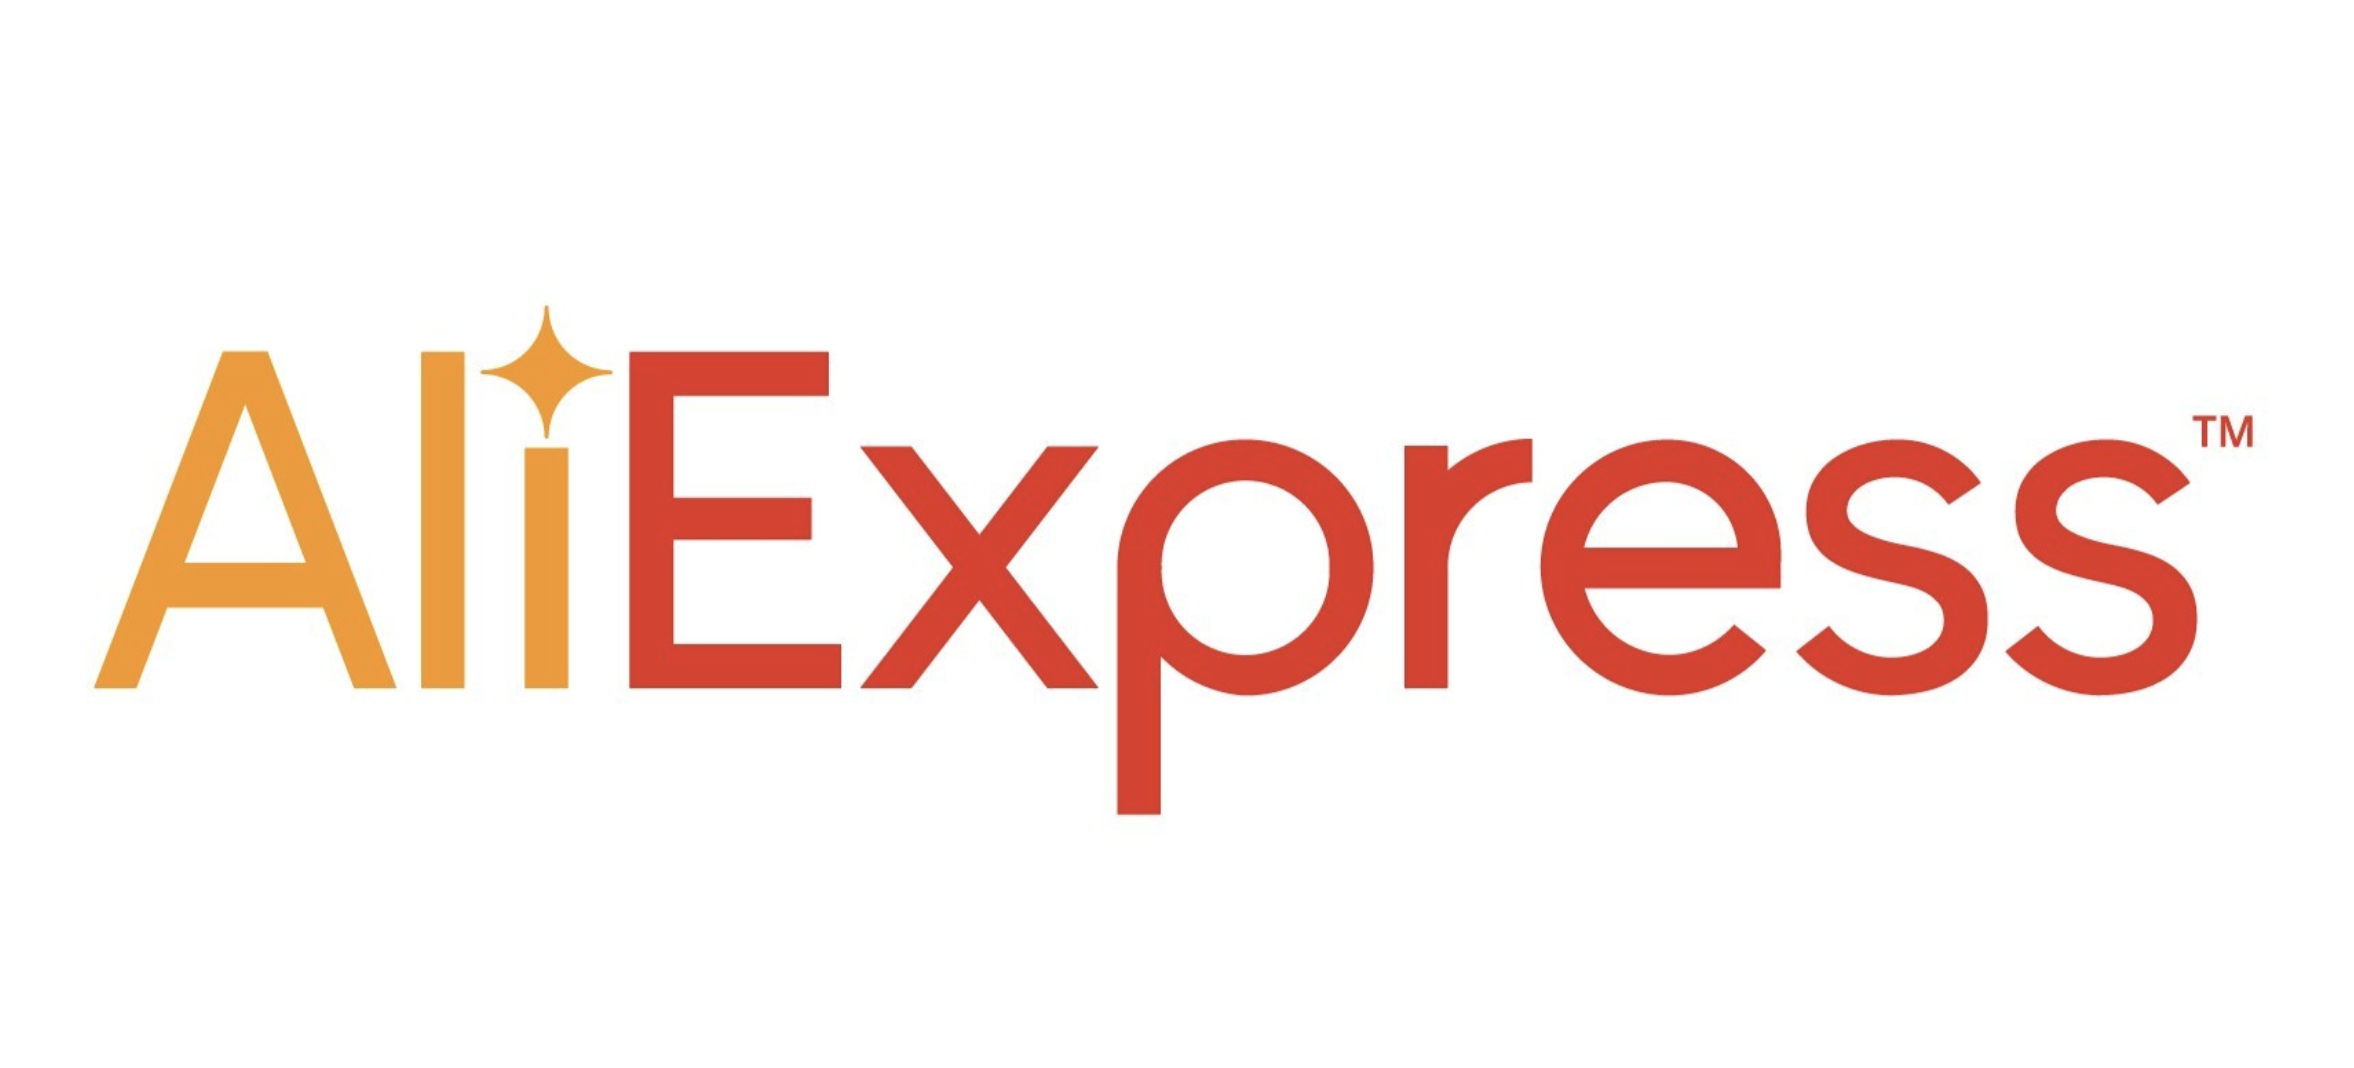 Discount and Deals with Promo Code on All Products at Aliexpress